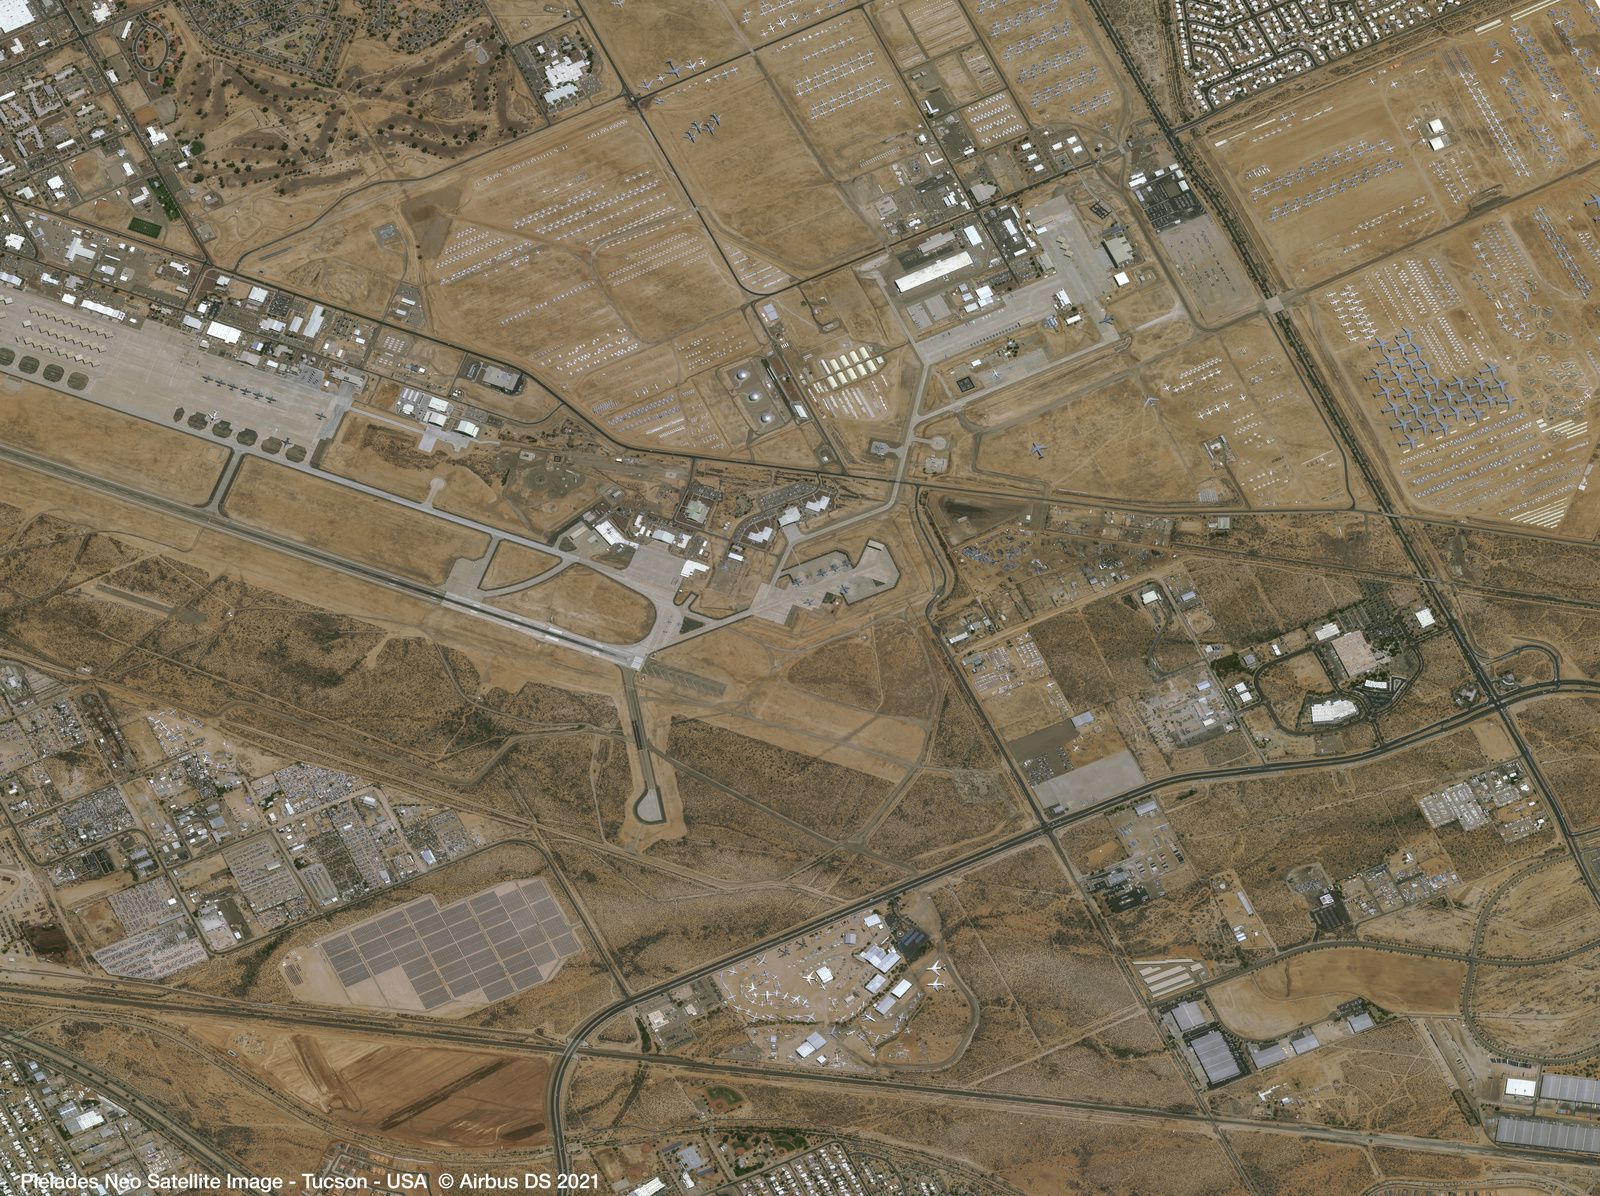 Pléiades Neo - Pleiades Neo 3 - Tucson - Pima Air and Space Museum - Cimetière d'avion - Davis Monthan Airforce Base - 309th ARMARG - Aircraft boneyard - graveyard - Satellite - Earth observation - Intelligence - GEOINT - Very high resolution - Airbus Defence and Space